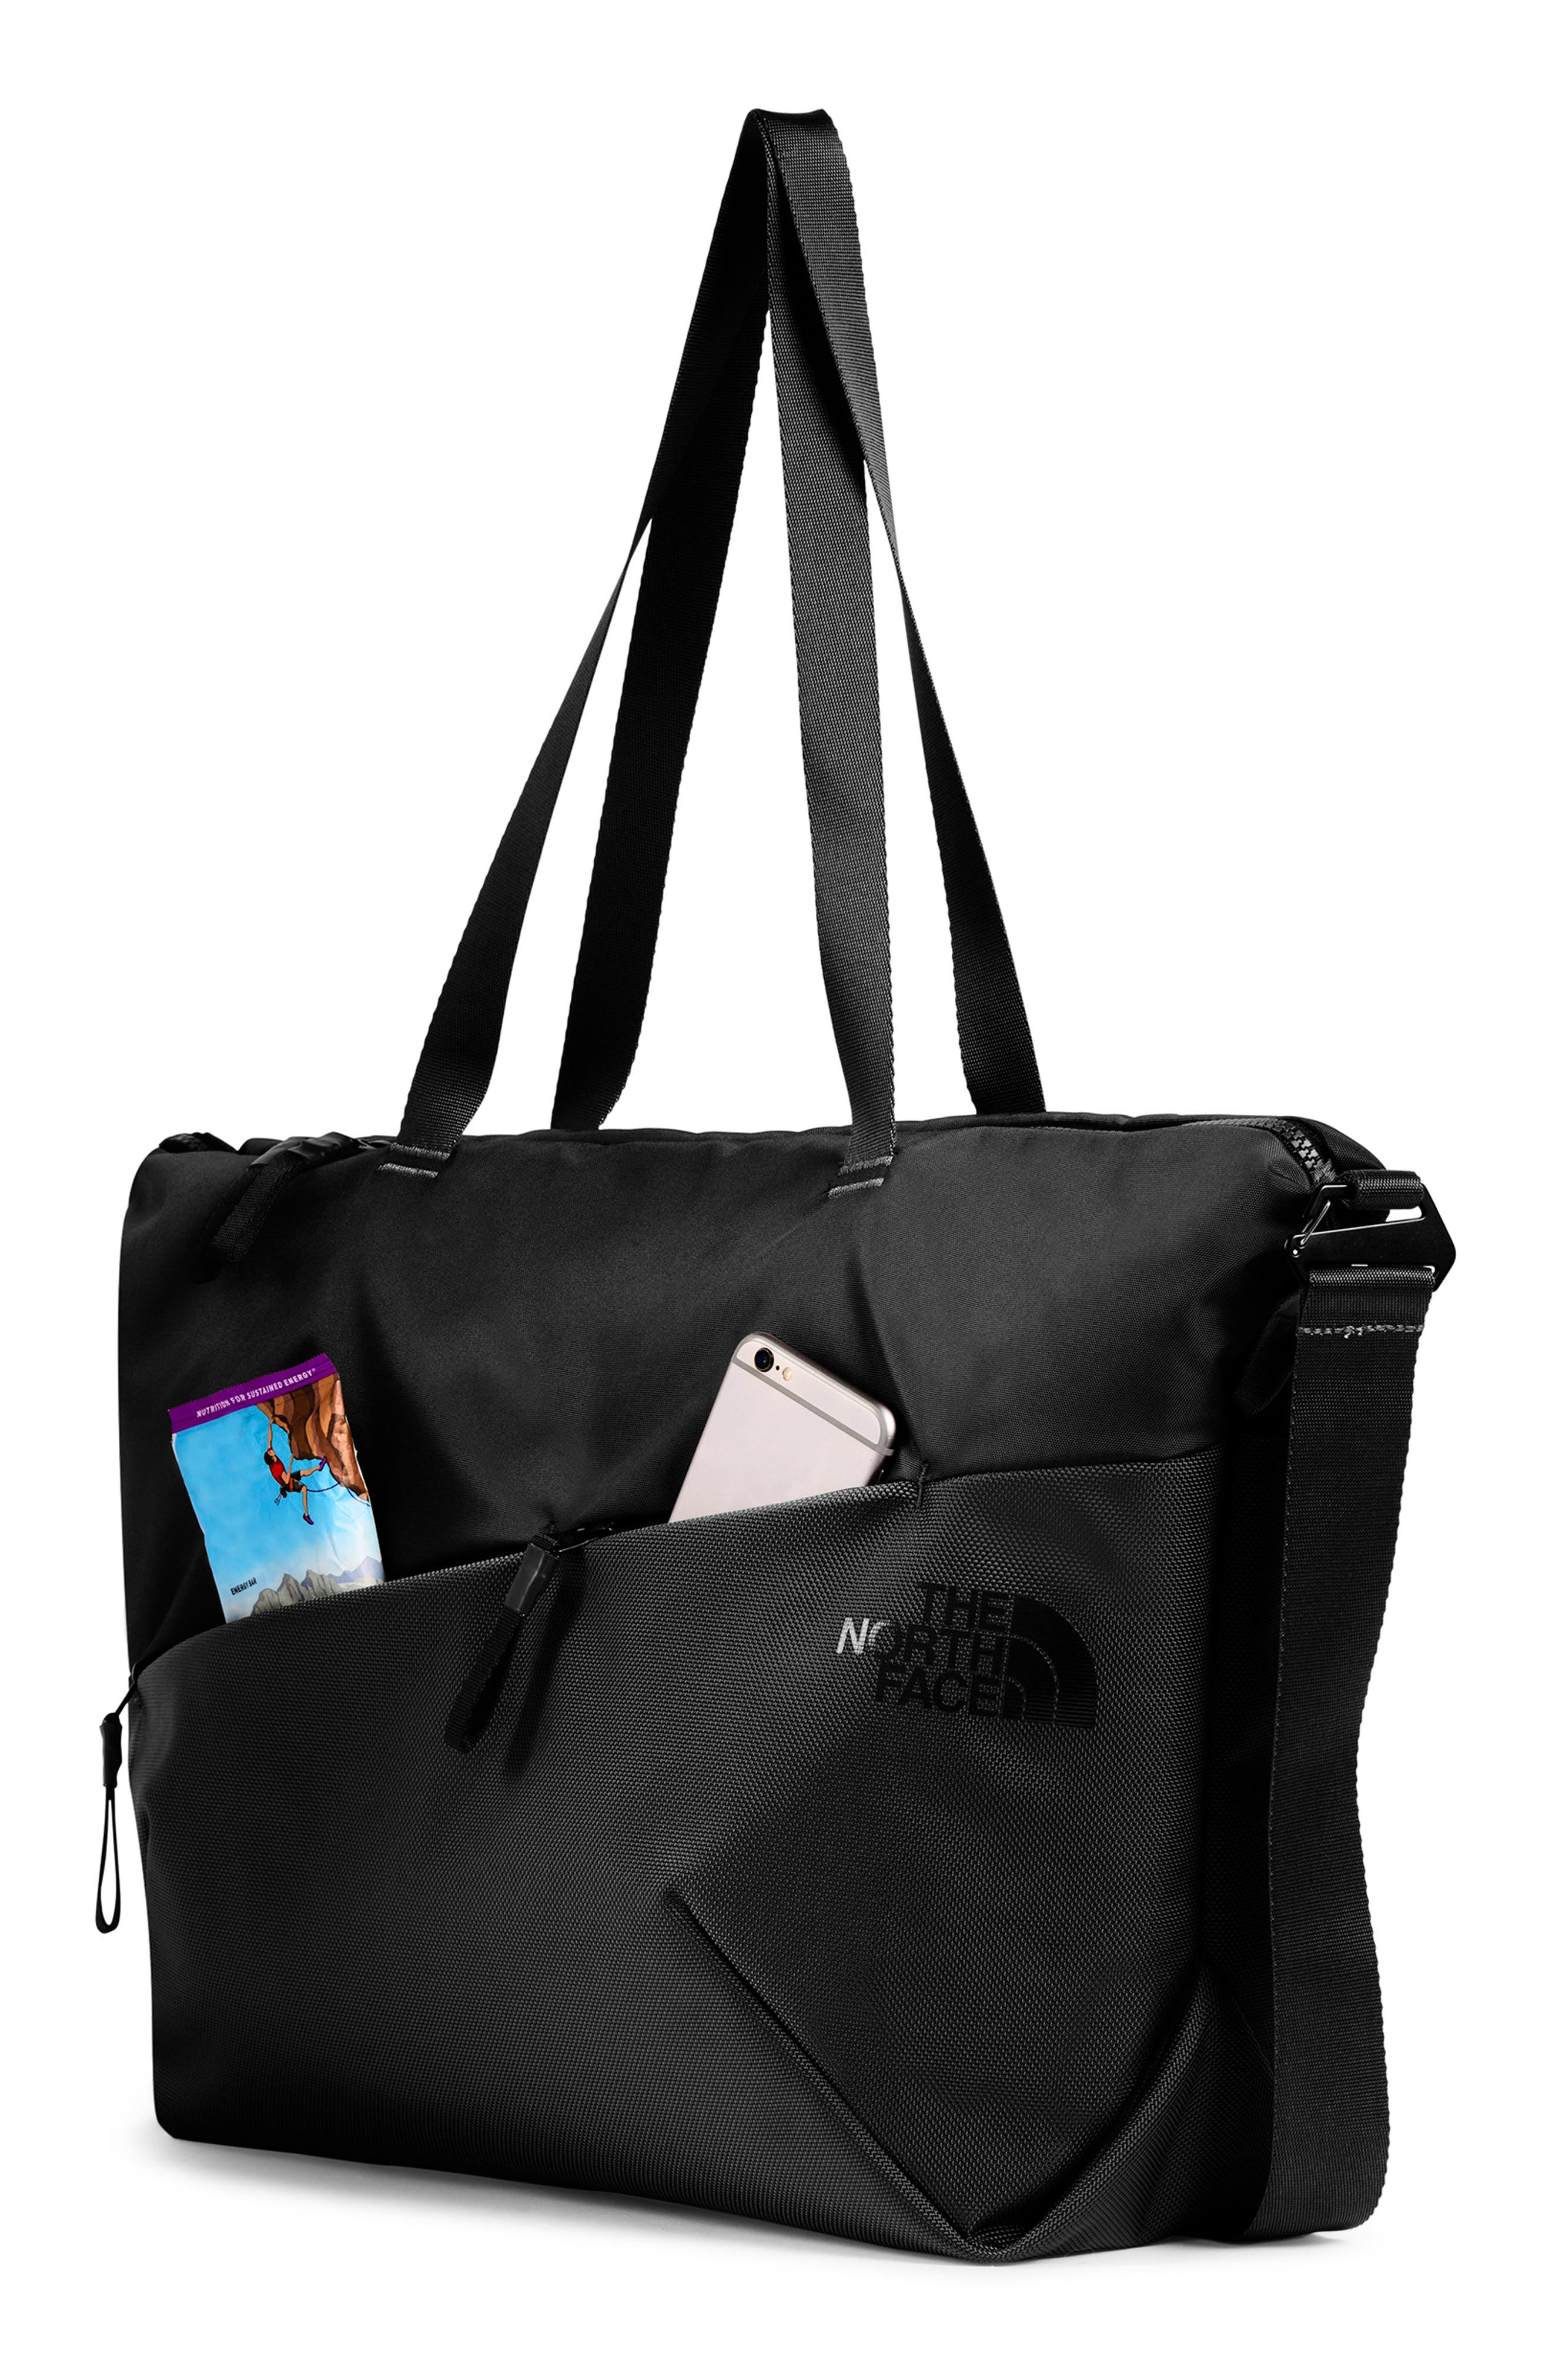 Electra Large Tote,                             Alternate thumbnail 4, color,                             TNF BLACK/ TNF BLACK